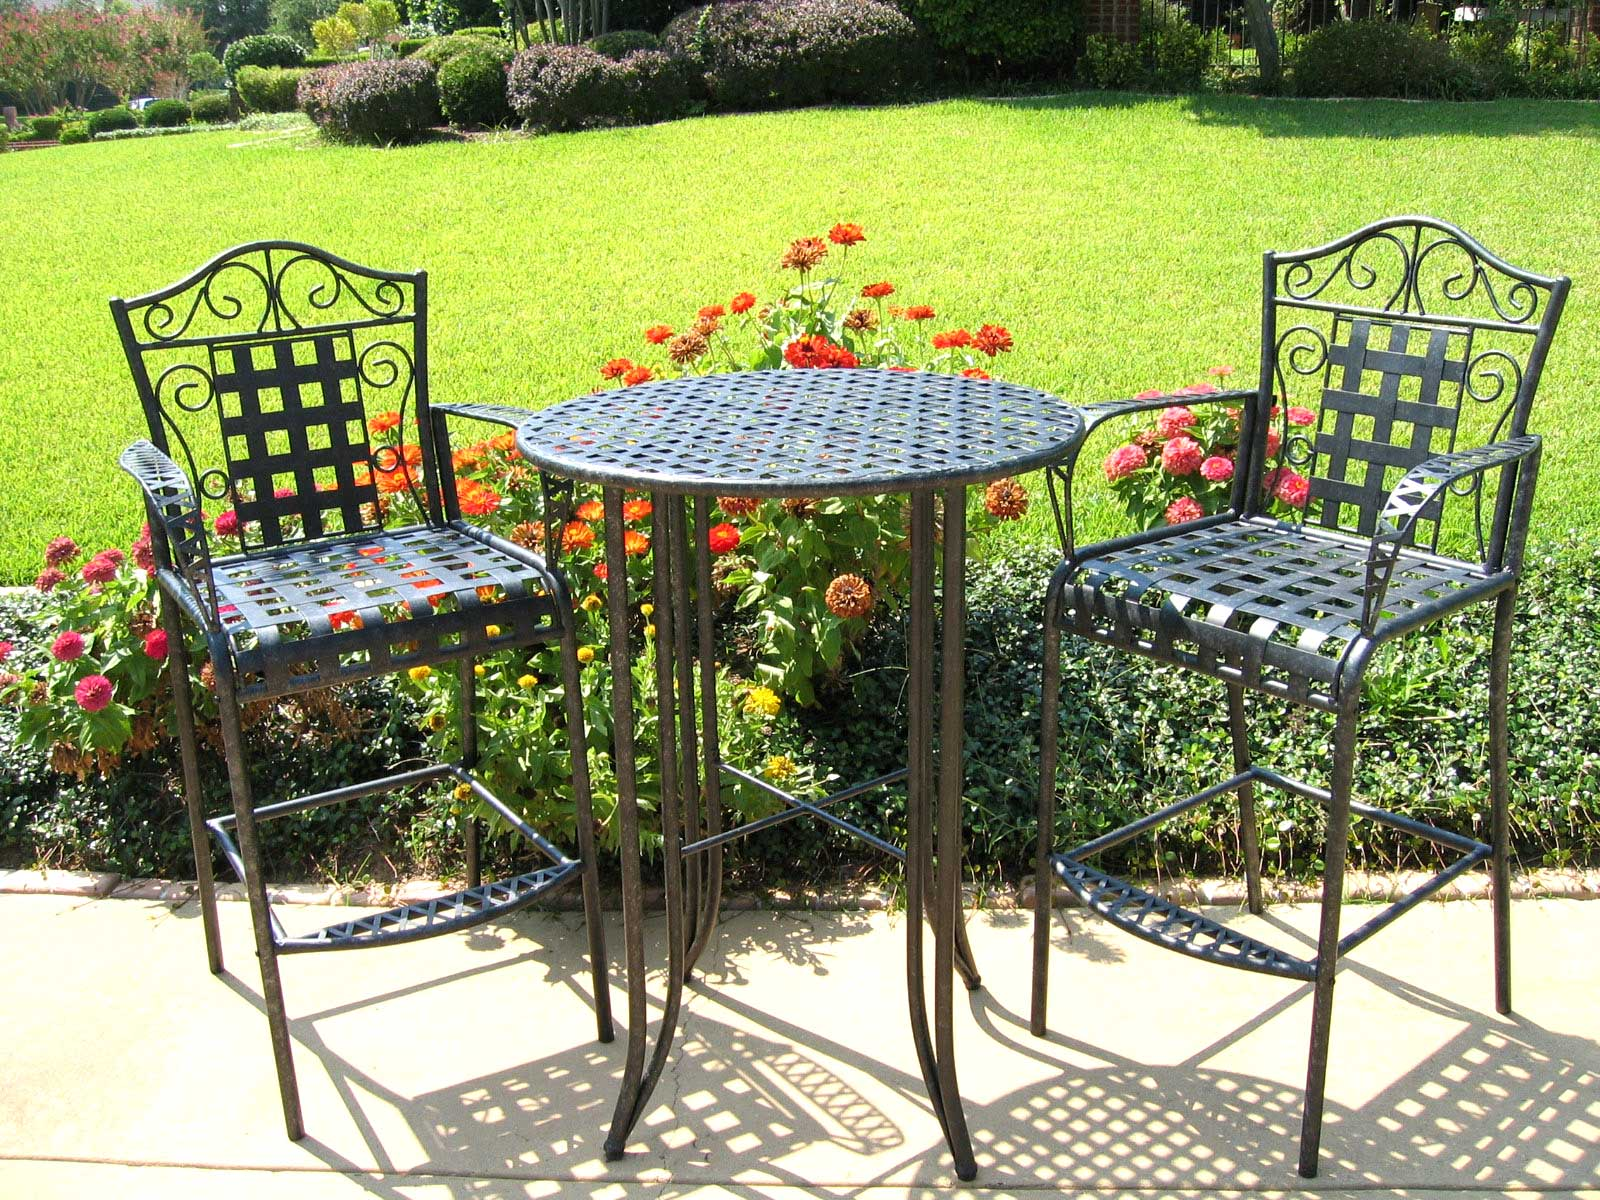 3 piece outdoor table and chairs black metal folding bistro set patio furniture in